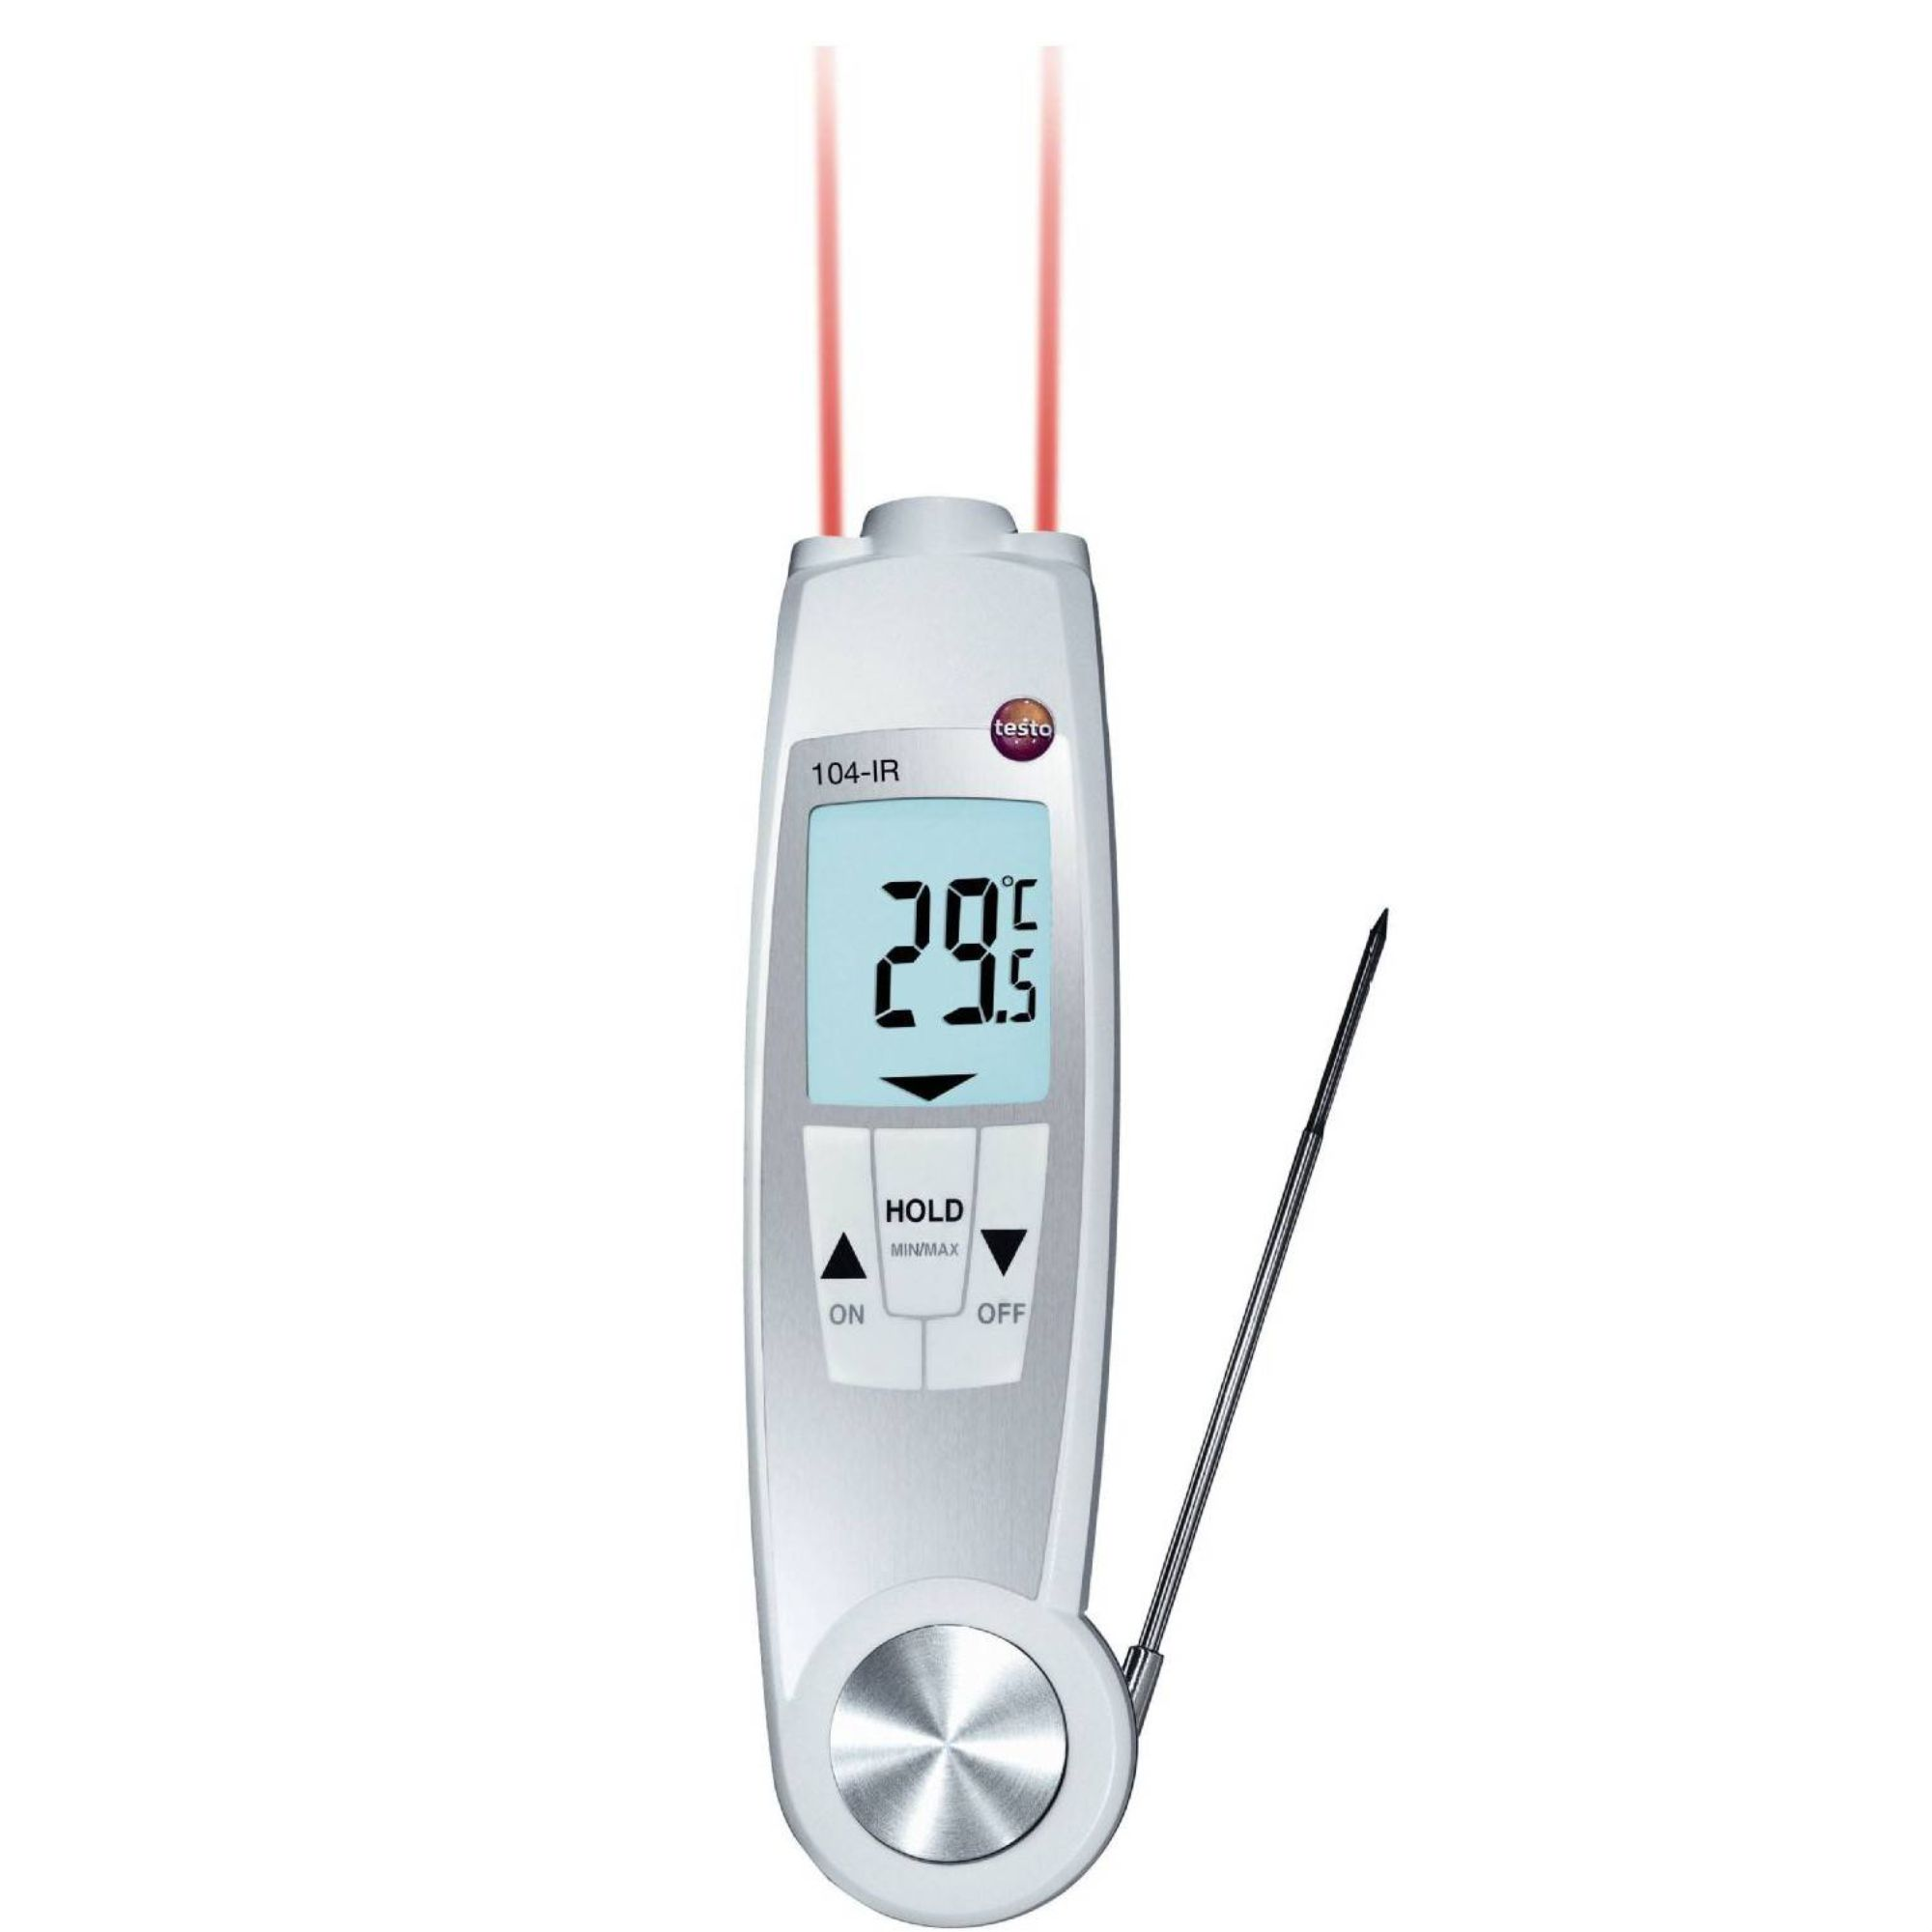 Waterproof penetration thermometer